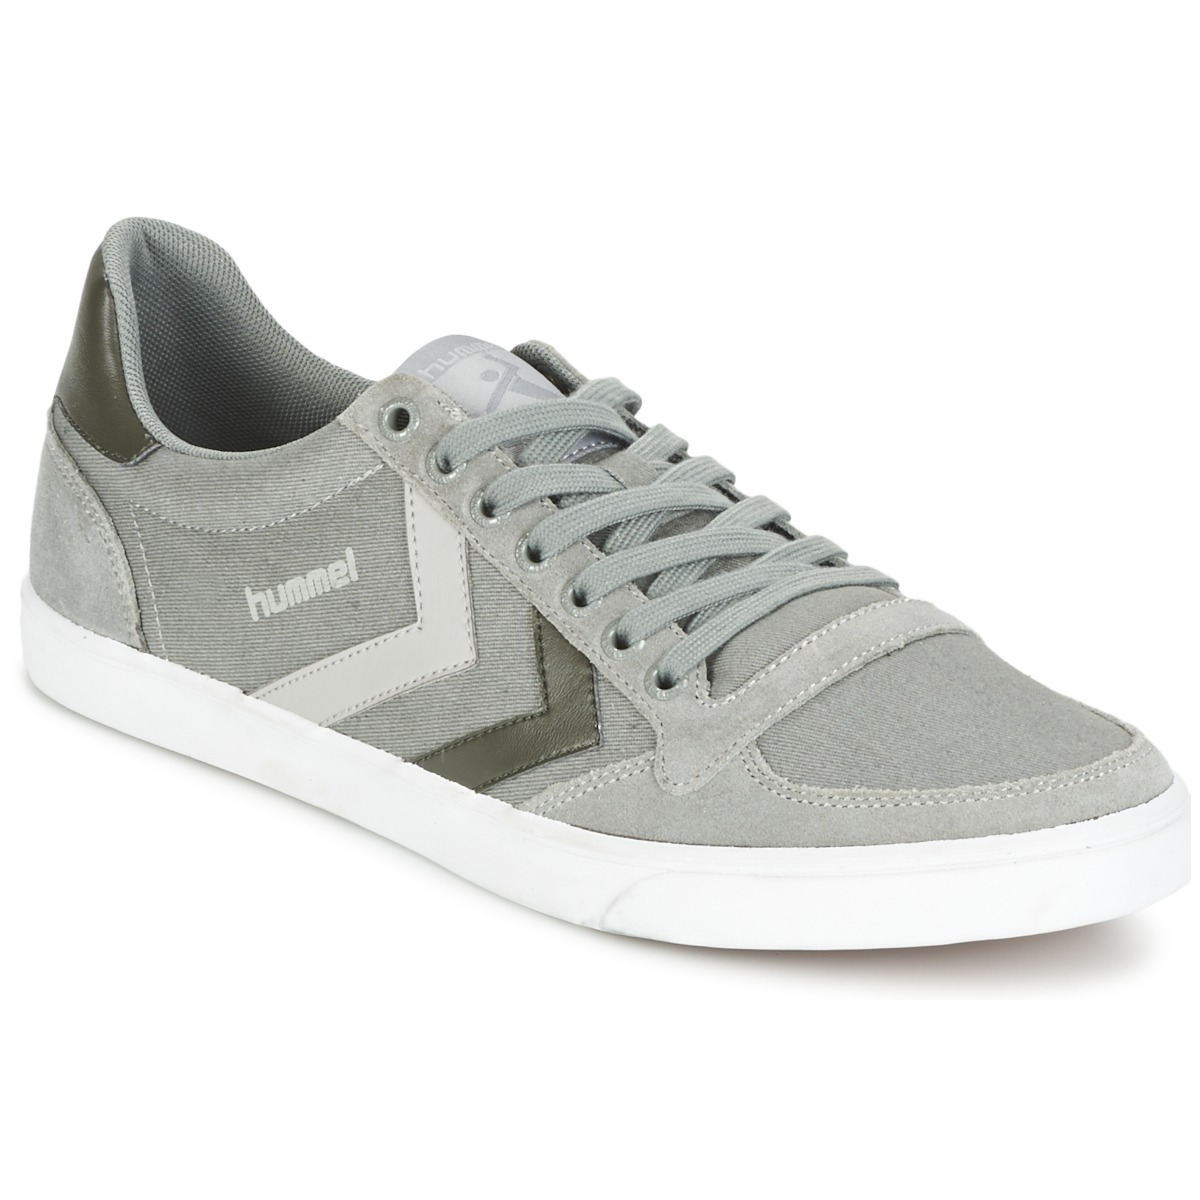 Hummel TEN STAR DUO CANVAS LOW Gris